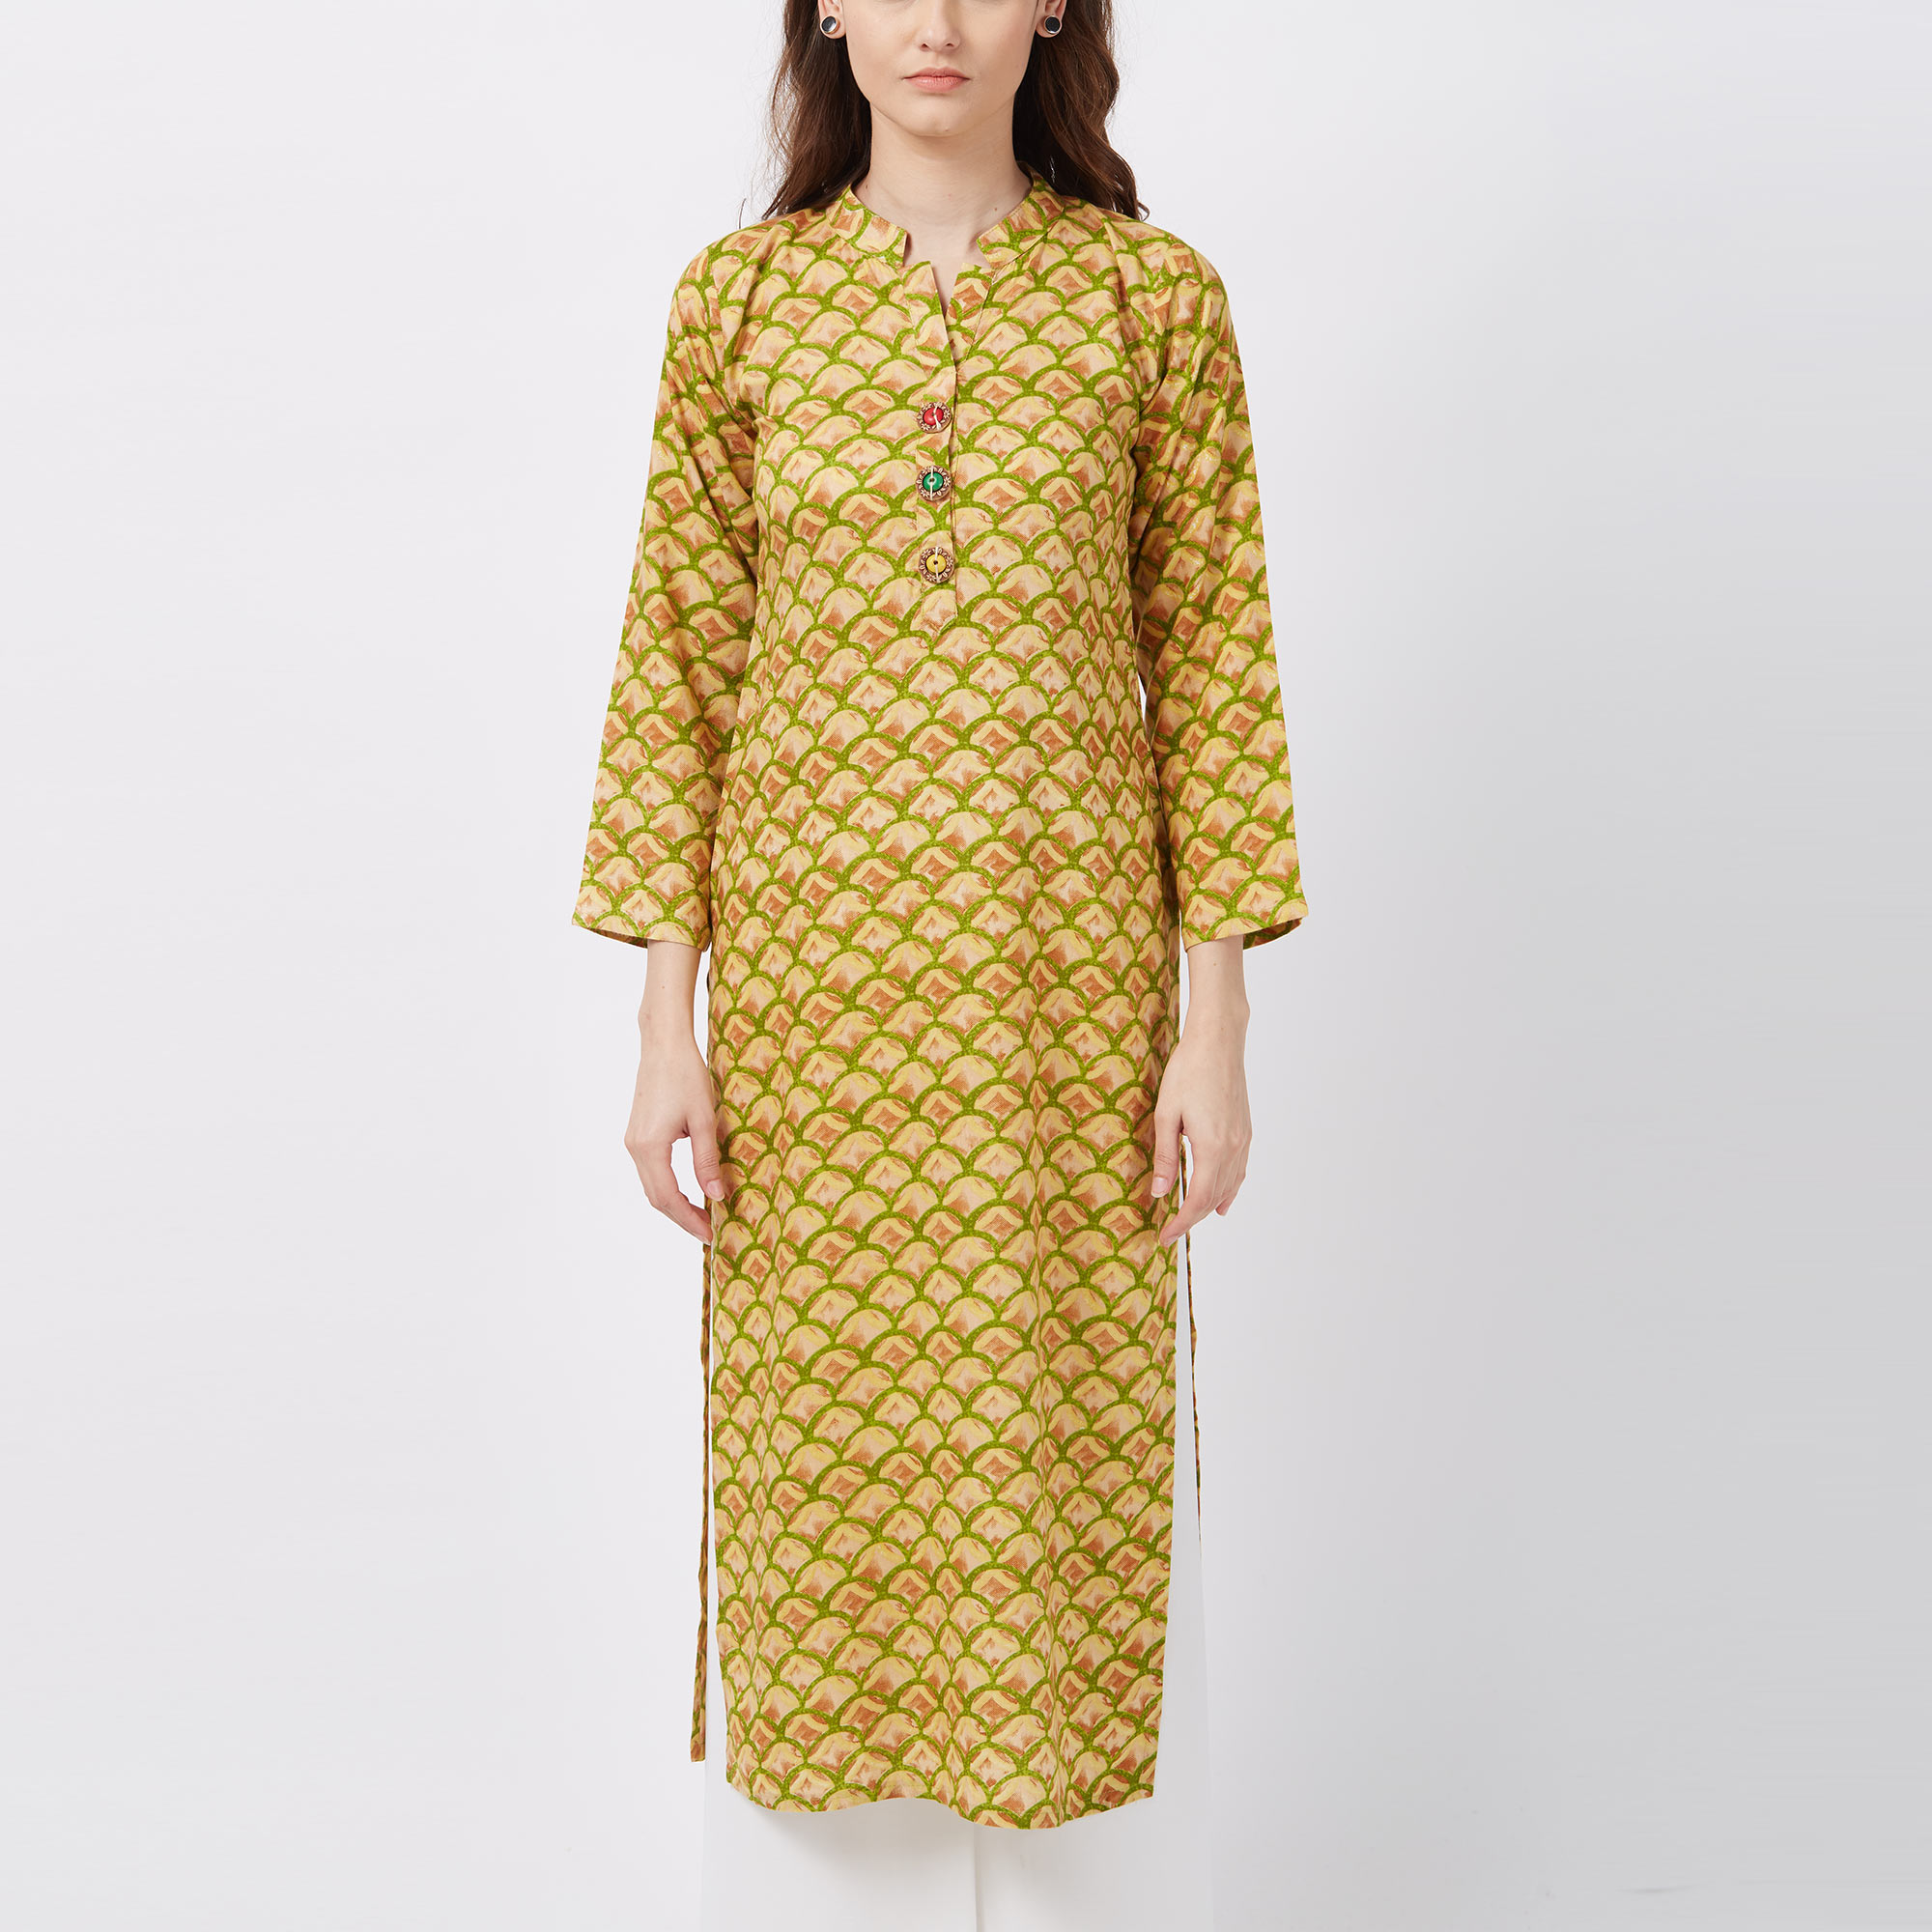 Vivid Yellow Colored Printed Casual Wear Rayon Kurti